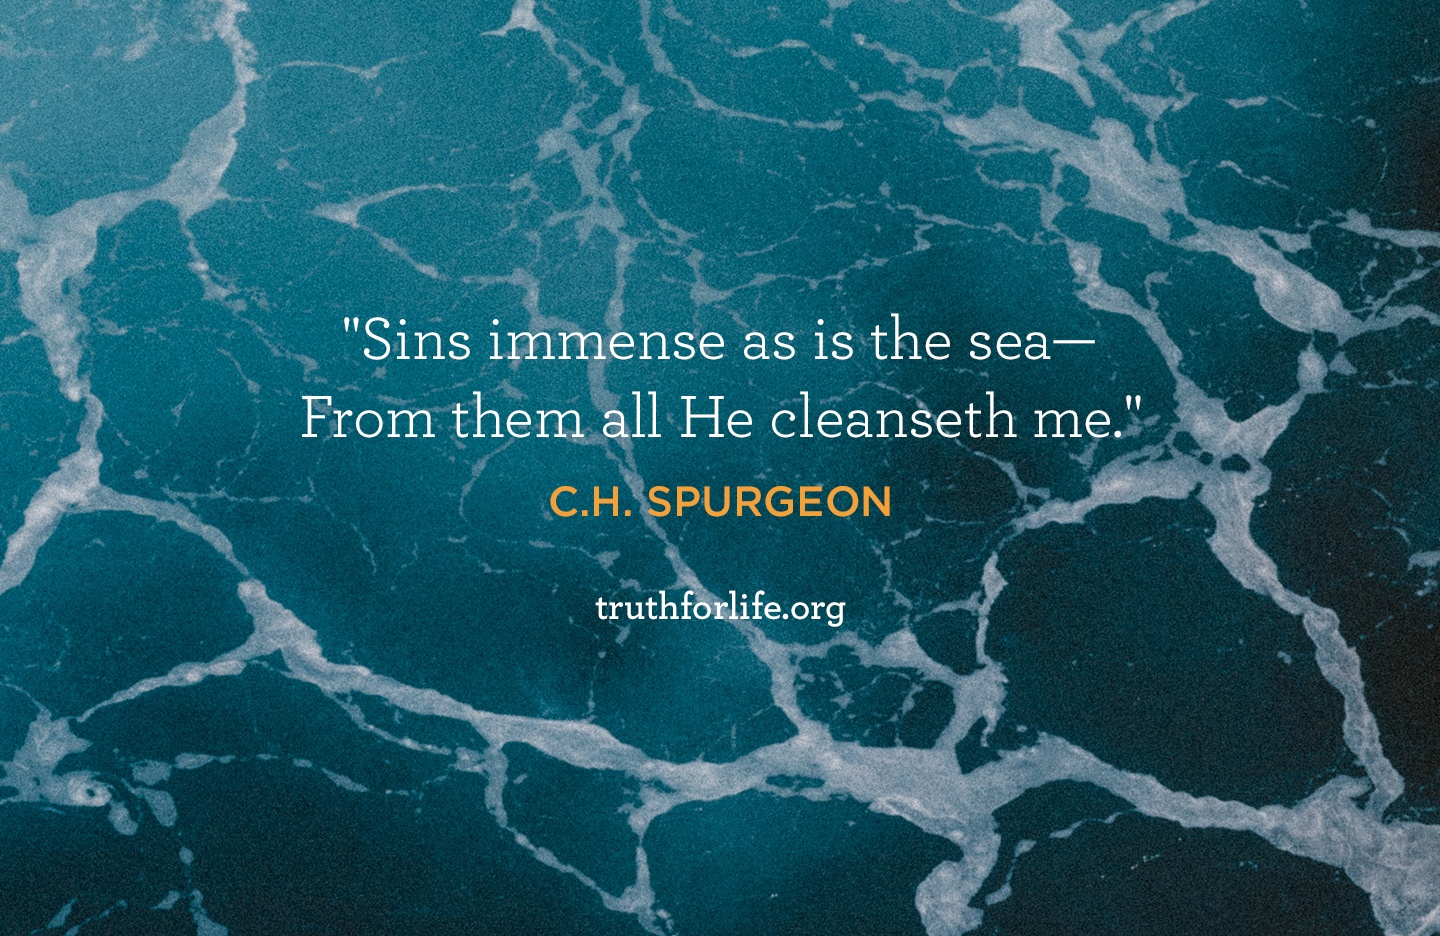 Sins immense as is the sea— From them all He cleanseth me. - C.H. Spurgeon